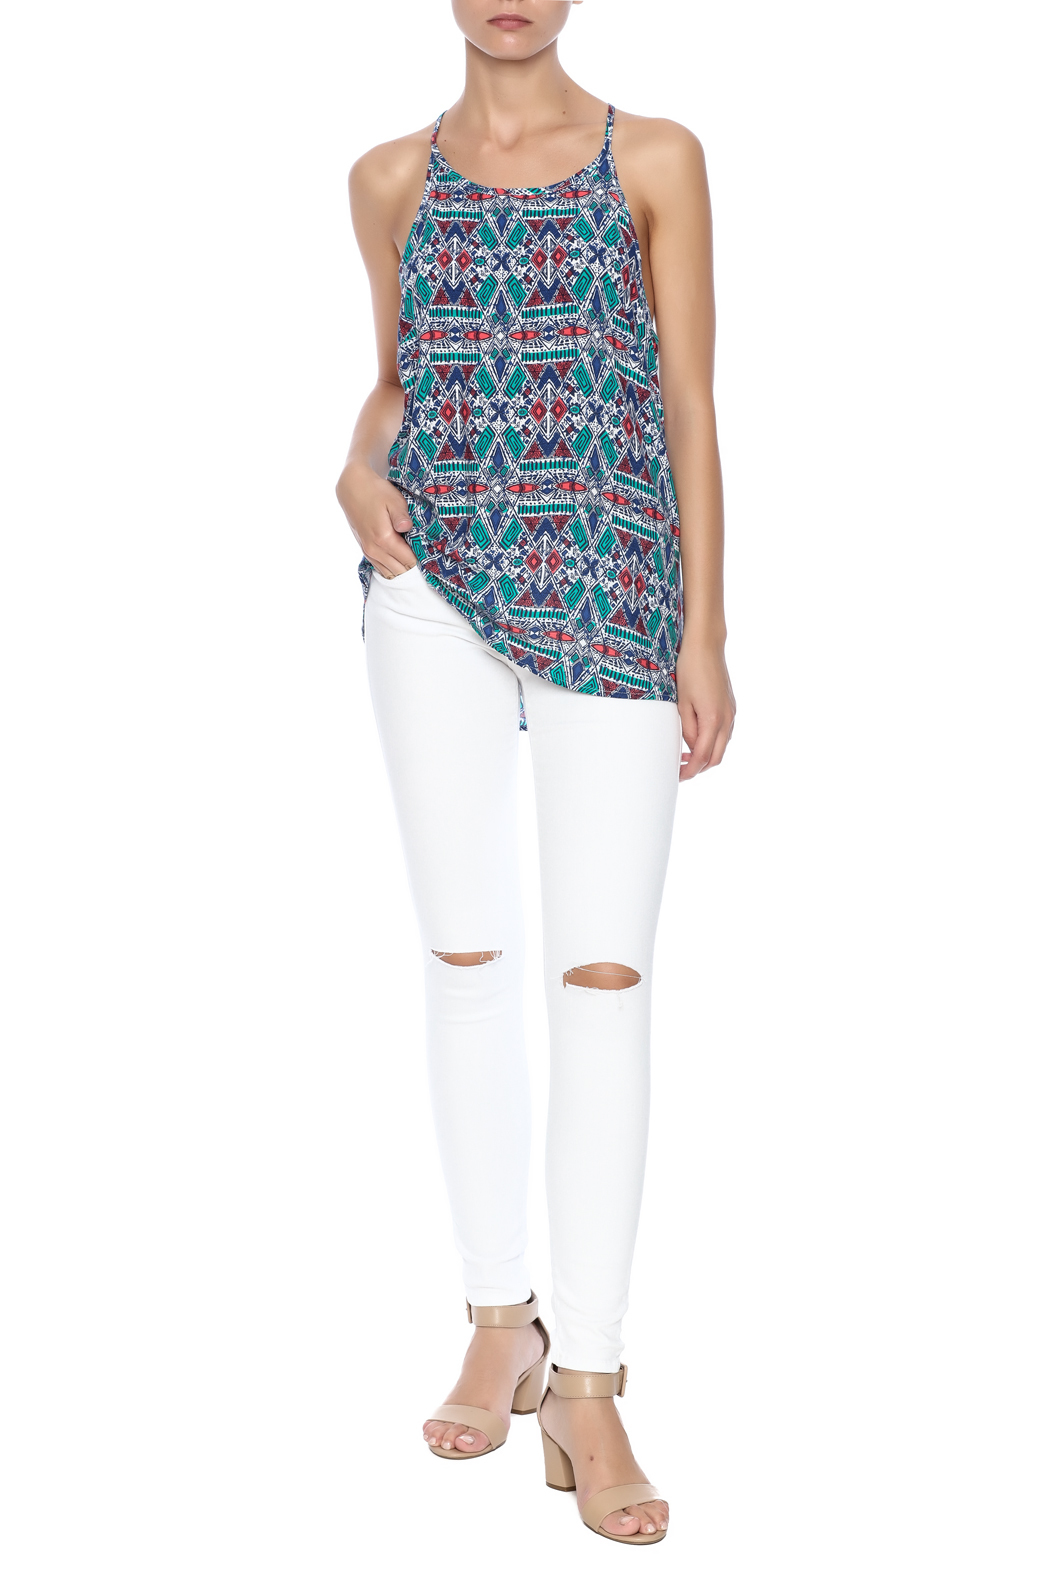 Ambiance Aztec Printed Tank - Front Full Image